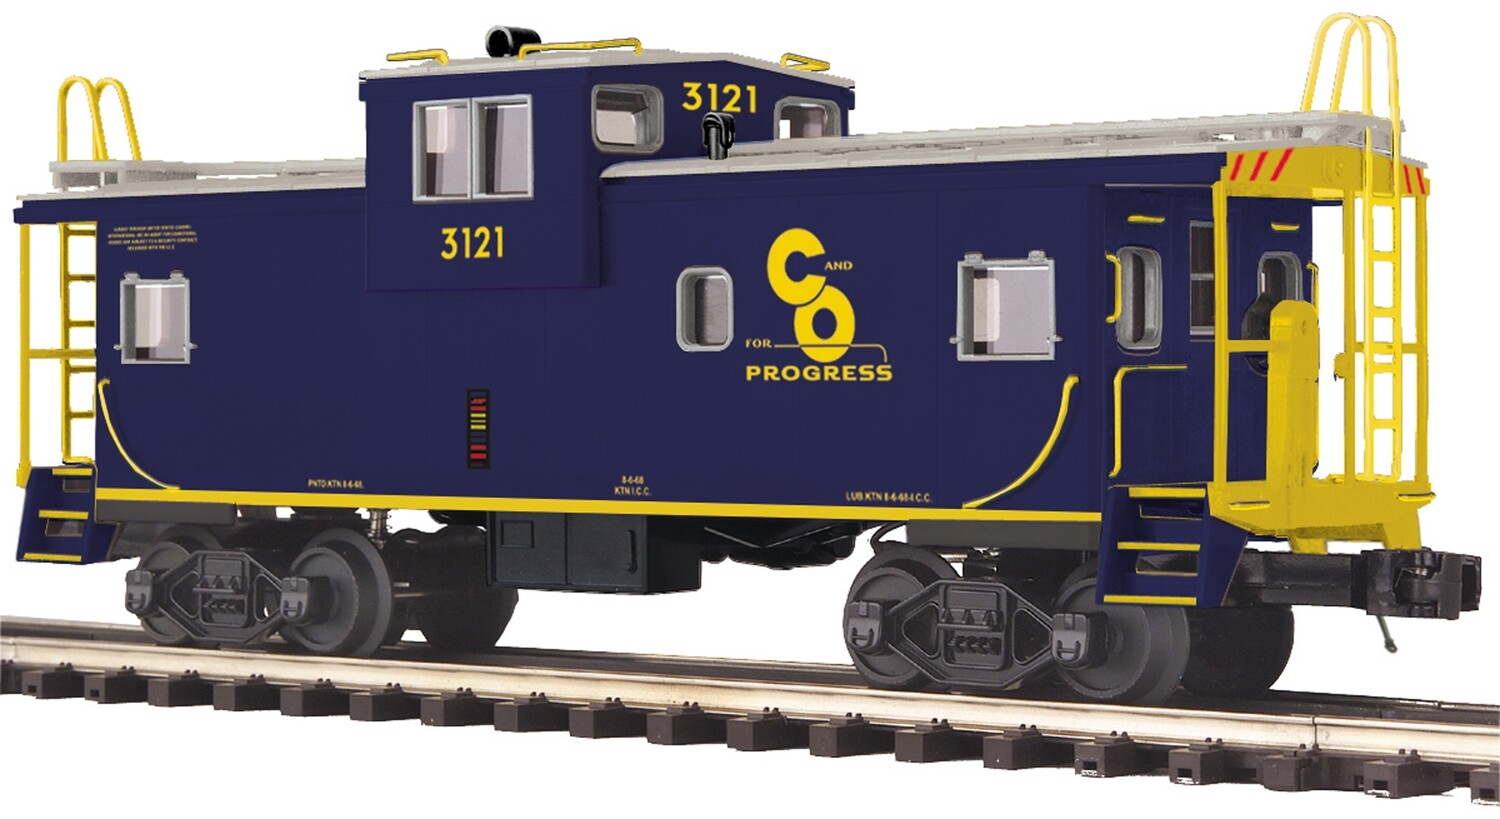 O Extended Vision Caboose, C&O #3121